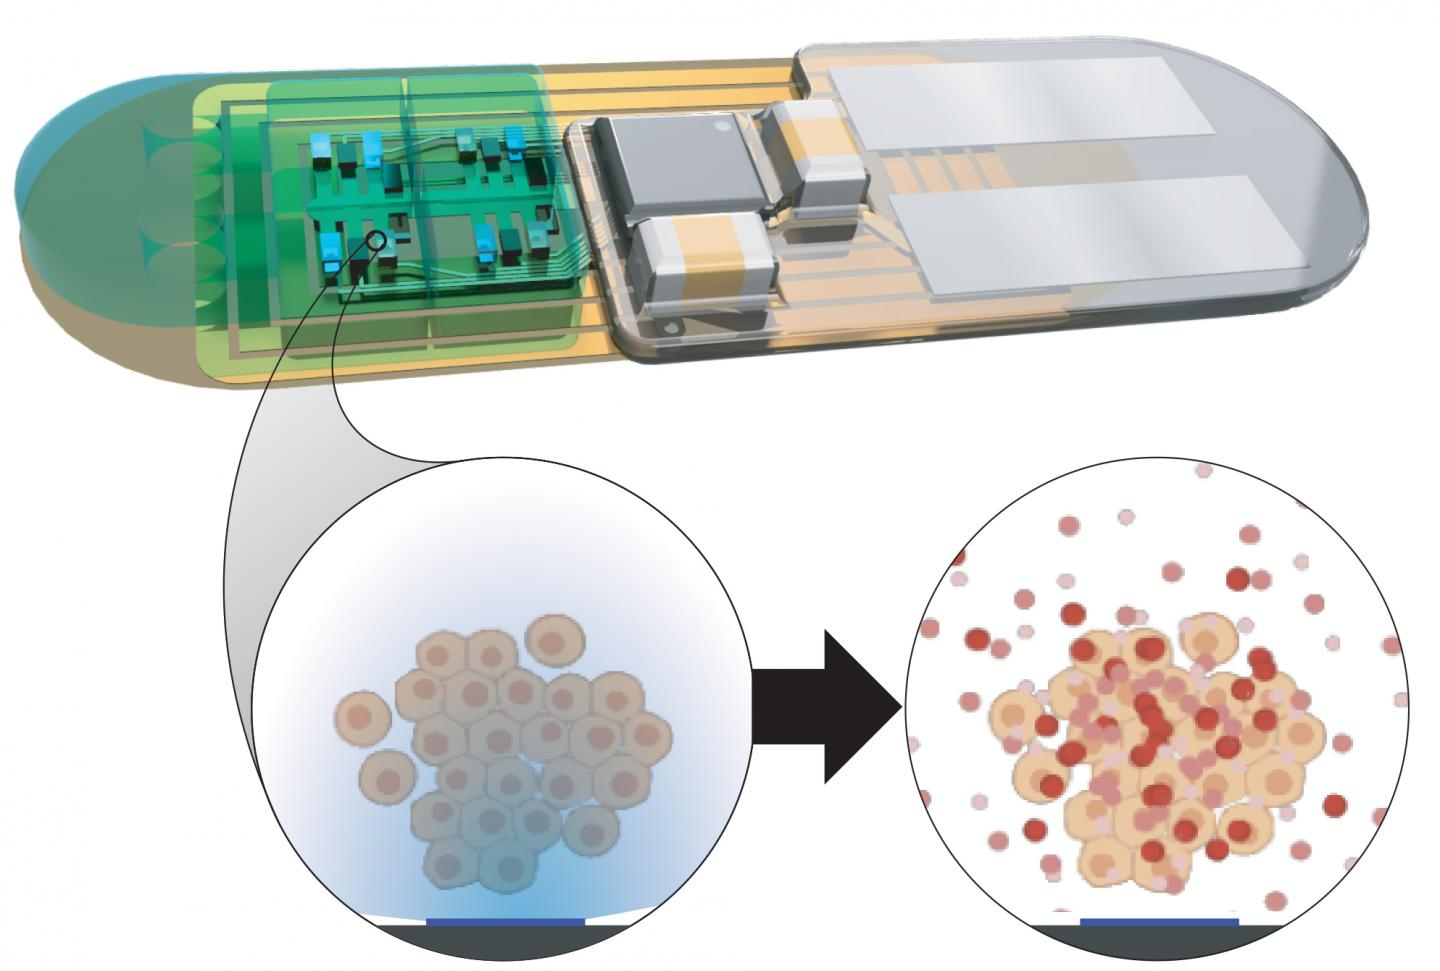 Implantable Bioelectronic To Control Body's Seep/Wake Cycles